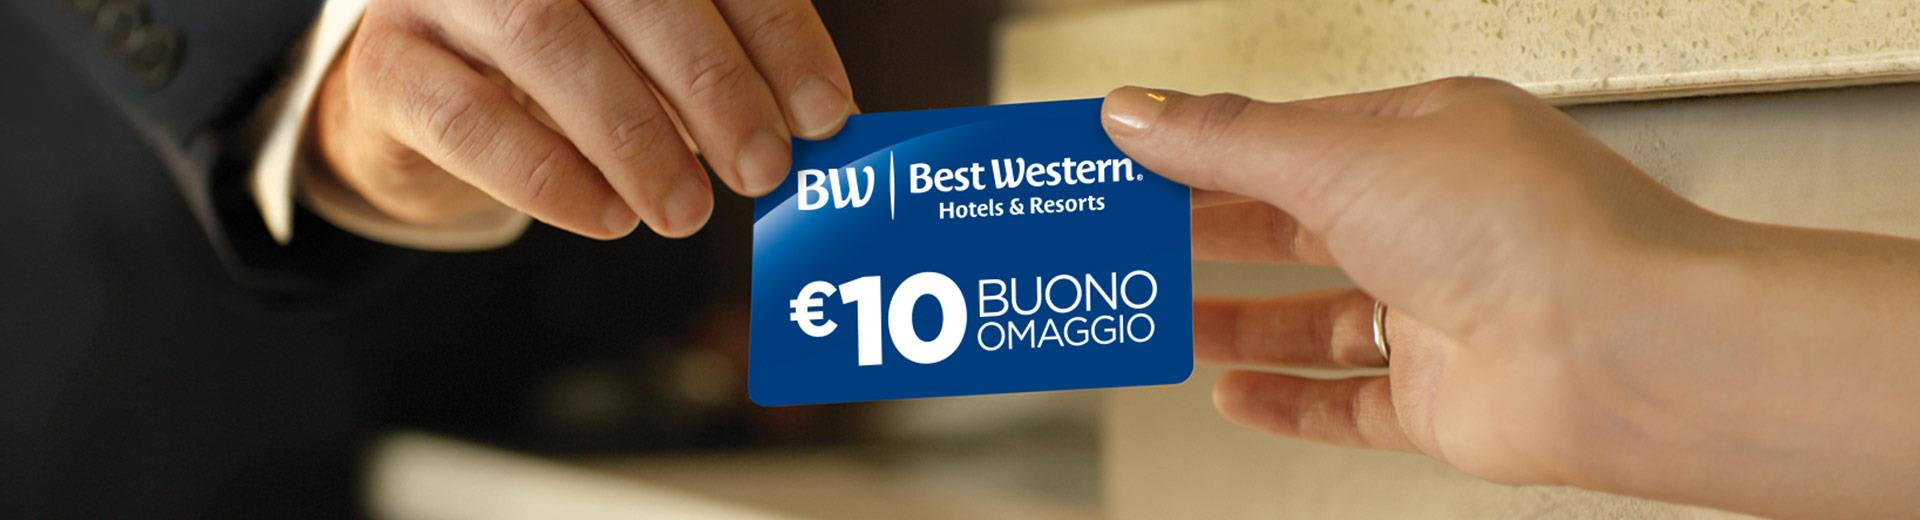 Winter Promotion BW Rewards® - Hotel Nazionale Sanremo